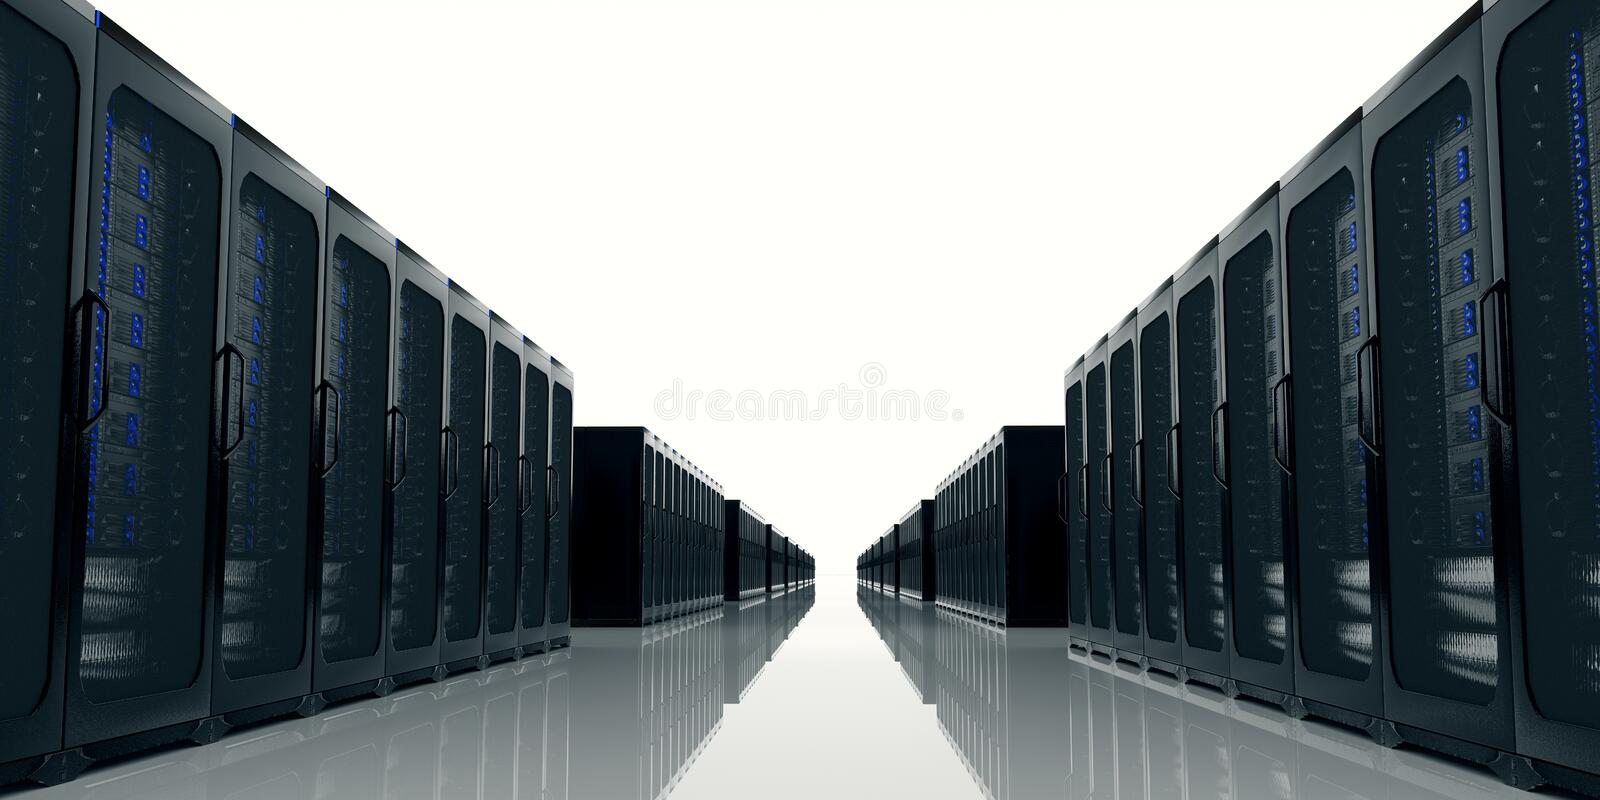 Server Room extremely detailed and realistic high resolution 3d illustration vector illustration